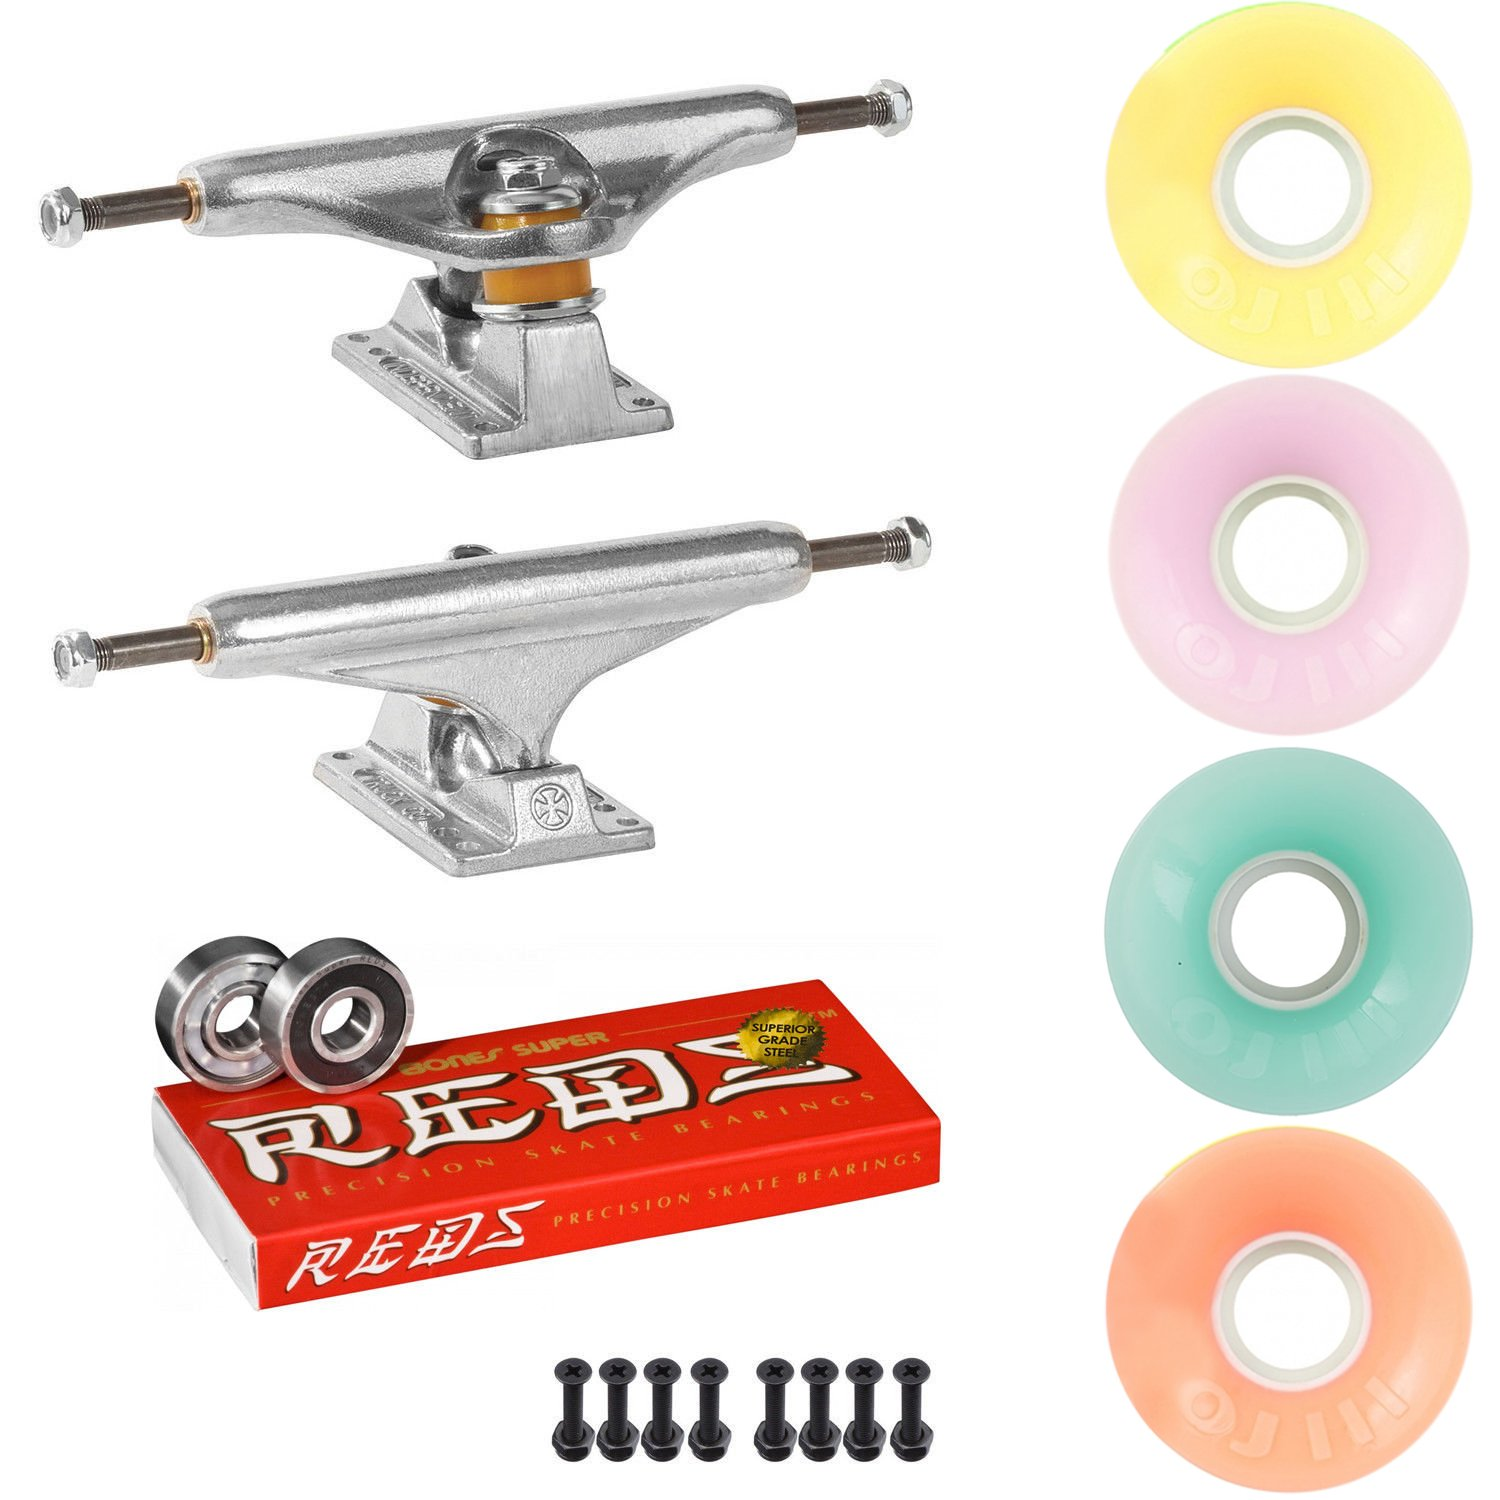 スケートボードキットIndy 159 Trucks OJ Mini Juice 55 mm 78 a WheelsパステルSuper Reds   B07DQTDWH5